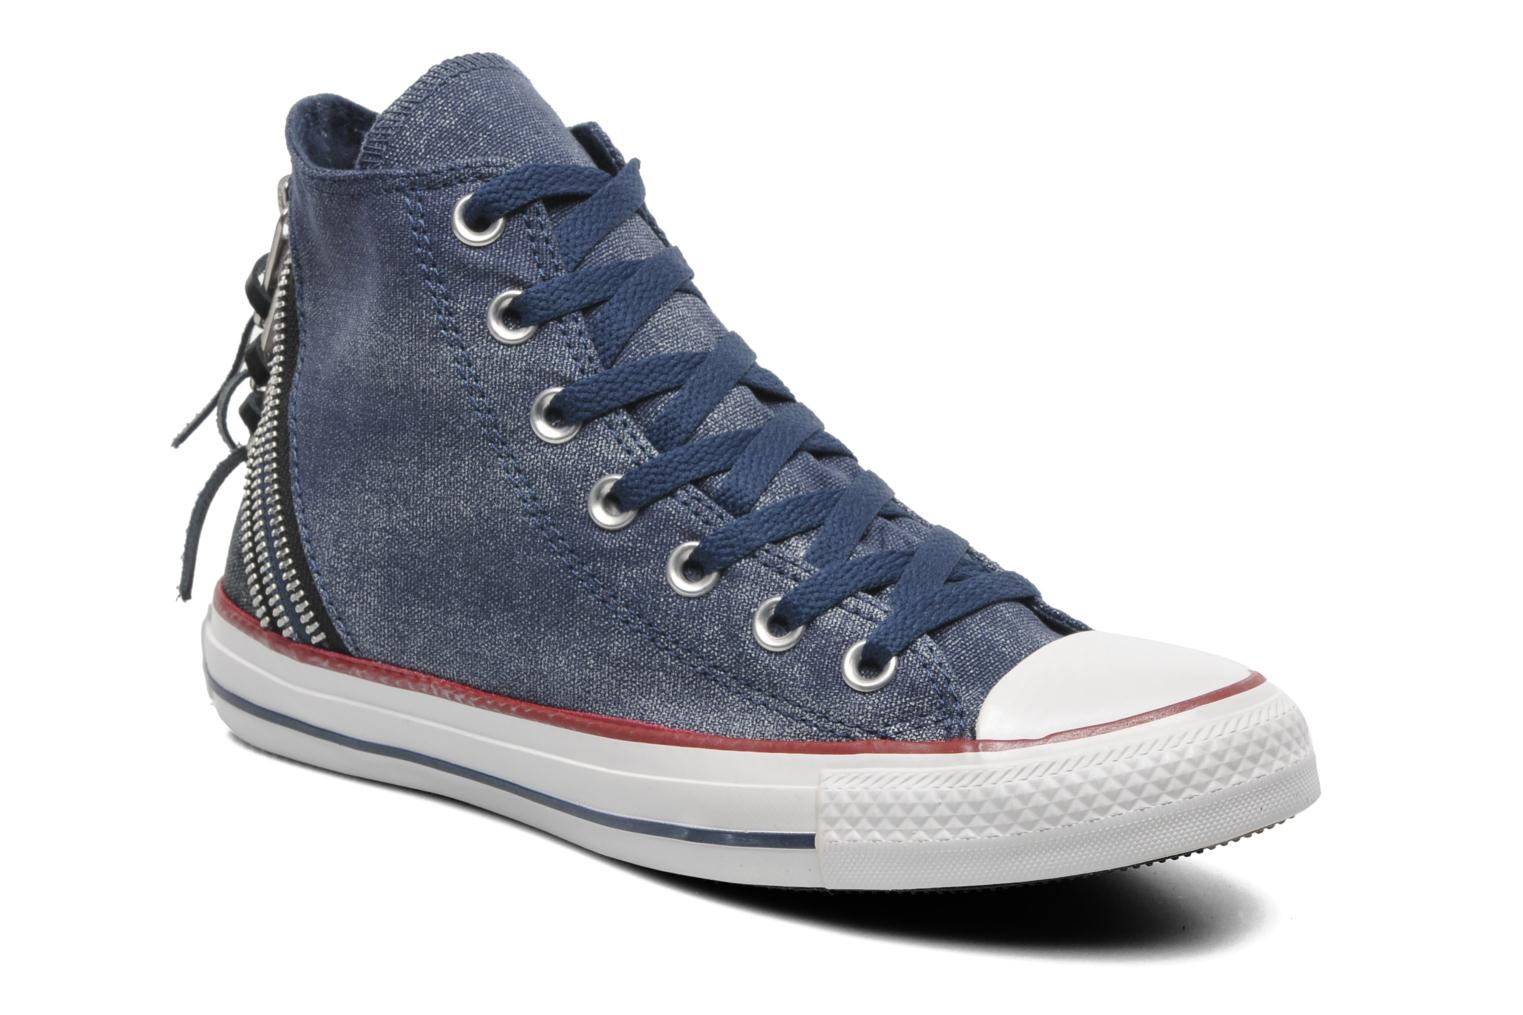 converse chuck taylor sparkle wash tri zip hi w. Black Bedroom Furniture Sets. Home Design Ideas